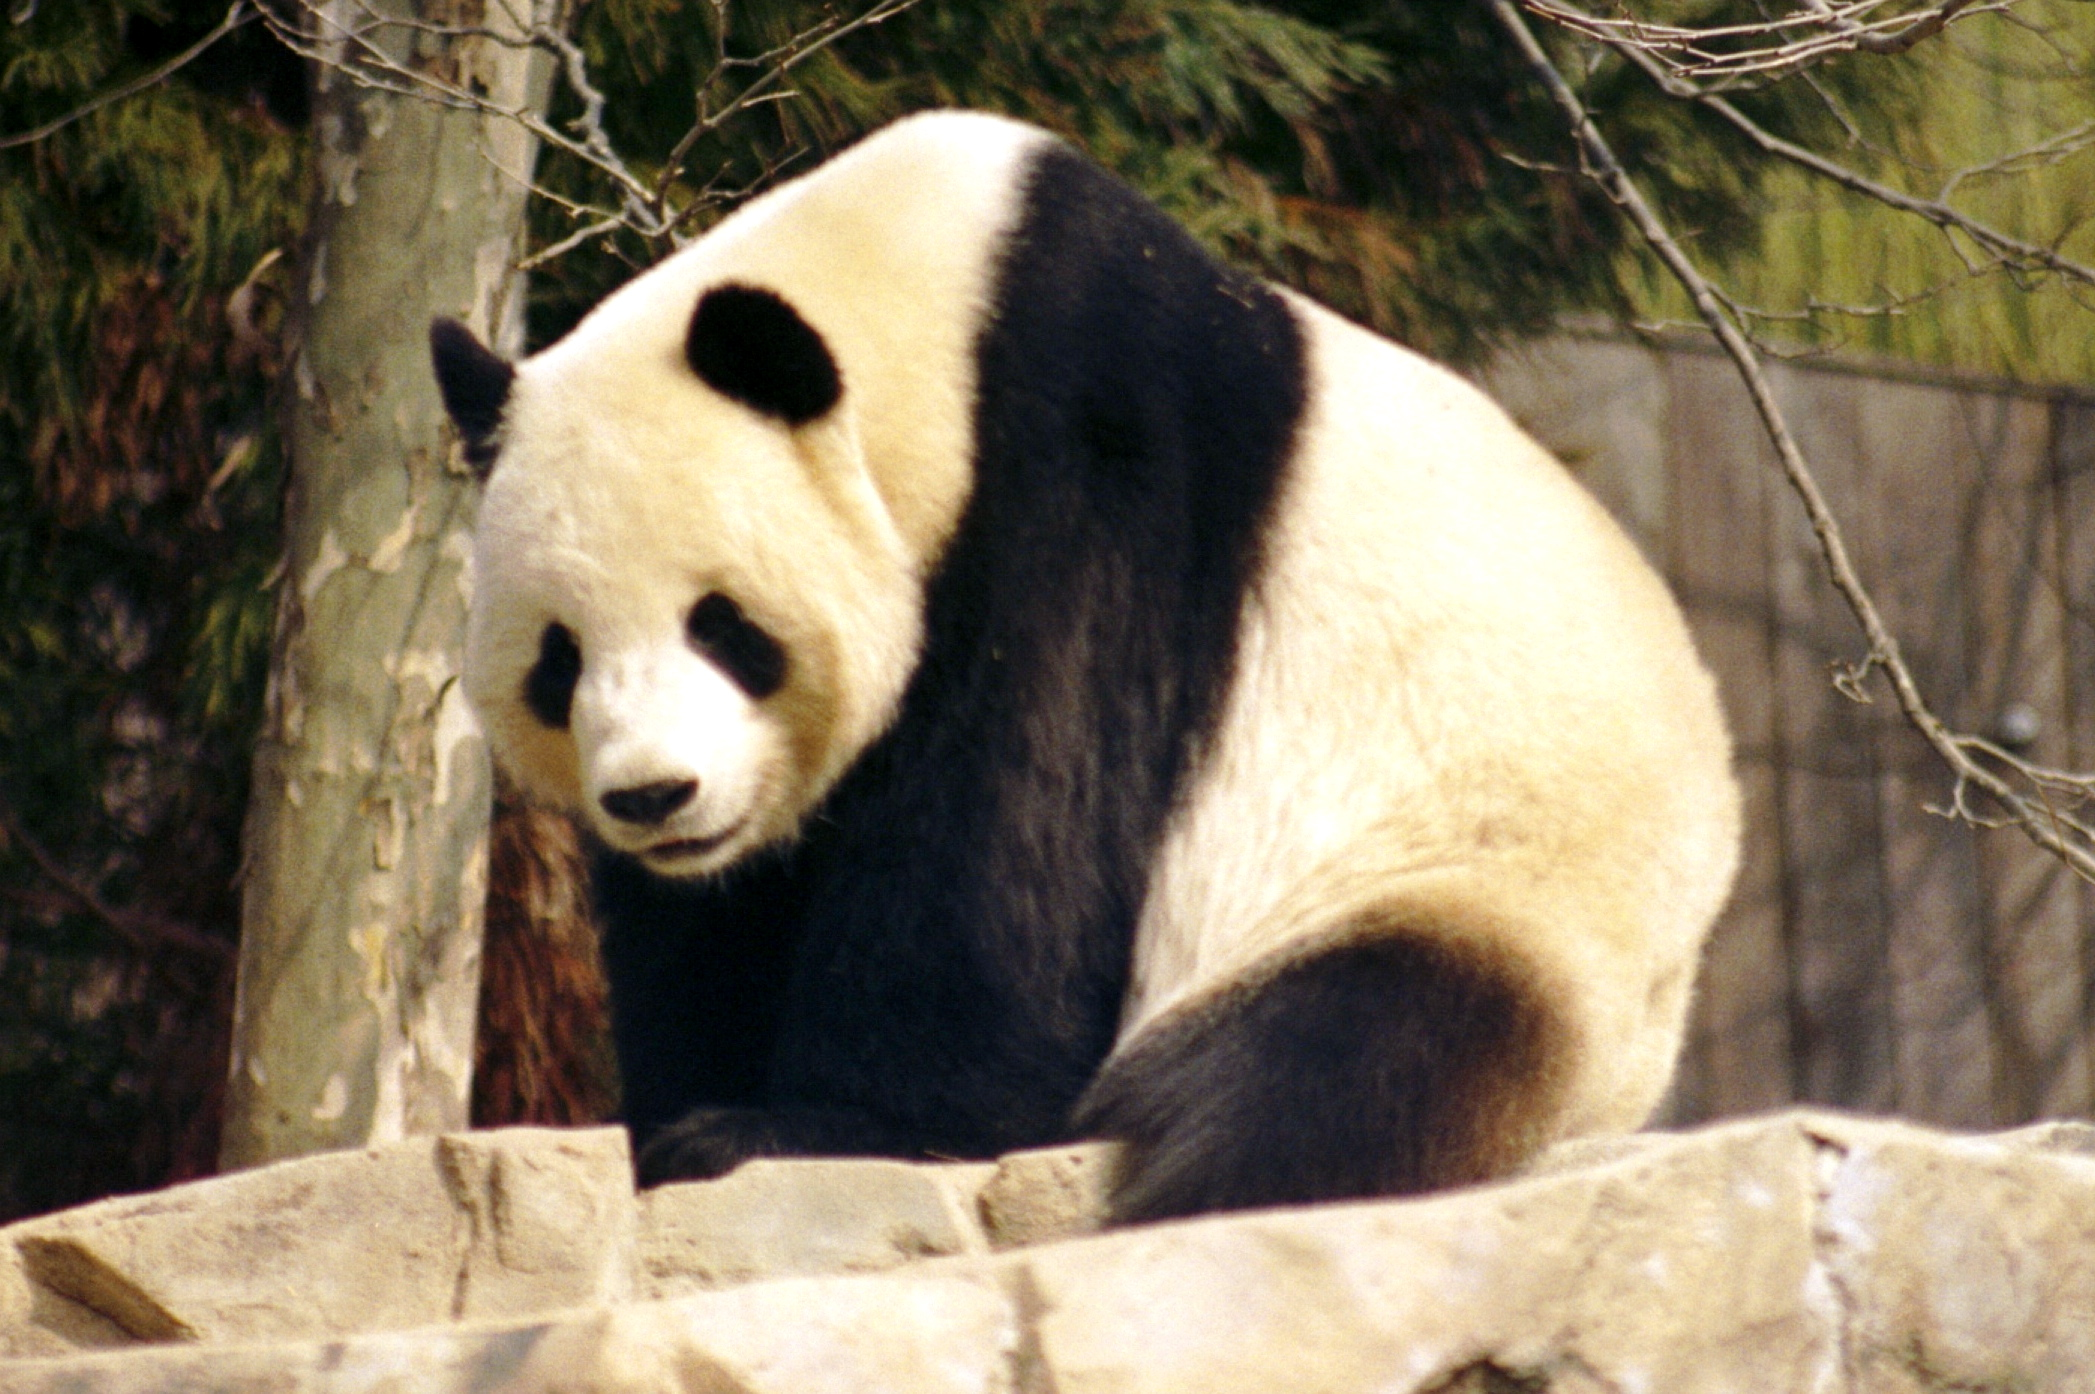 http://naturescrusaders.files.wordpress.com/2008/11/giant_panda_2004-03-2.jpg